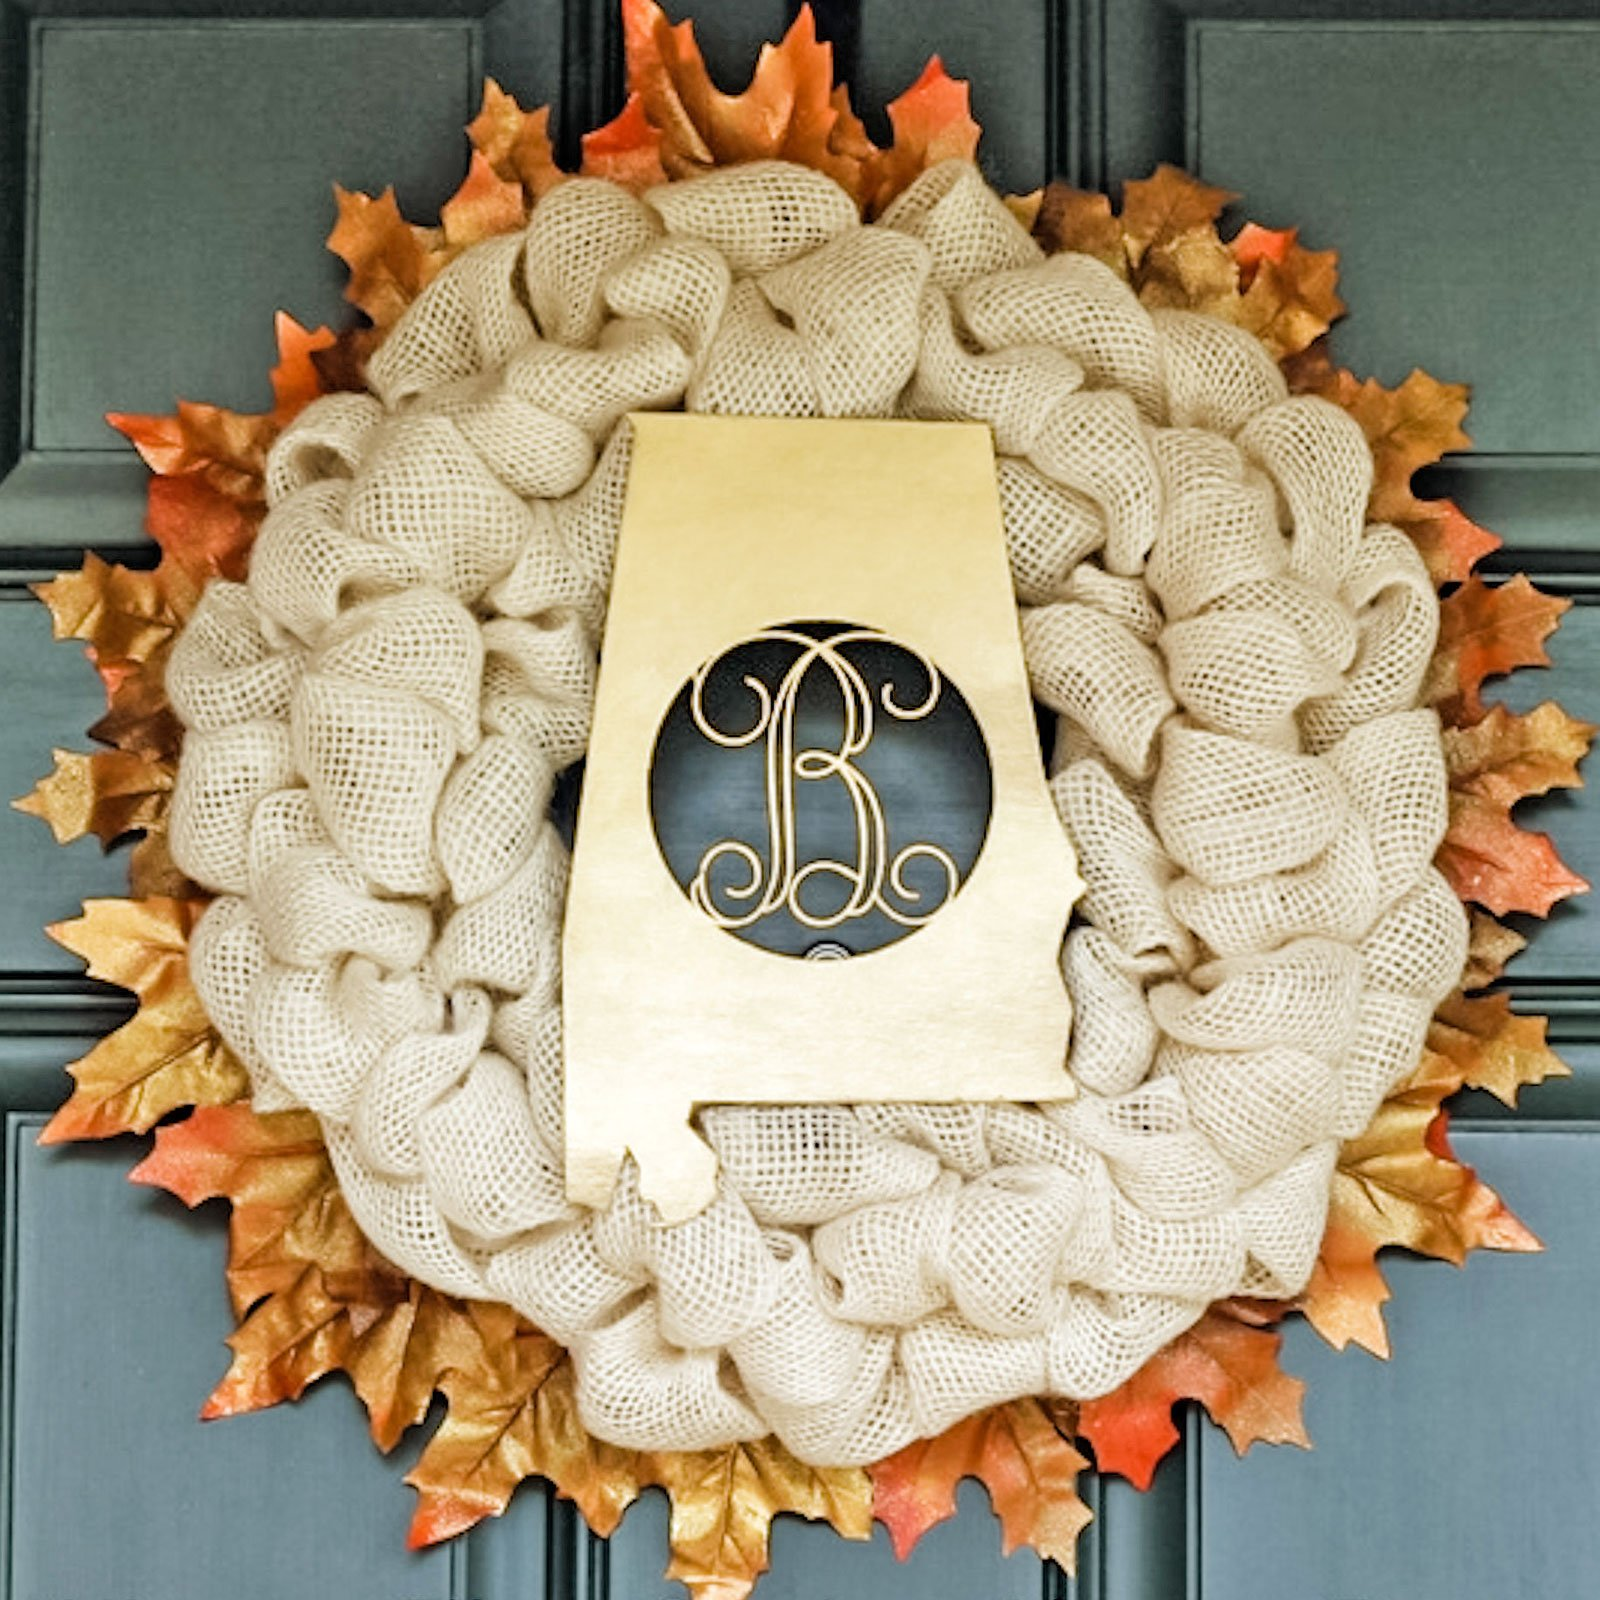 Fall burlap wreath with golden leaves around the edge and a gold monogram